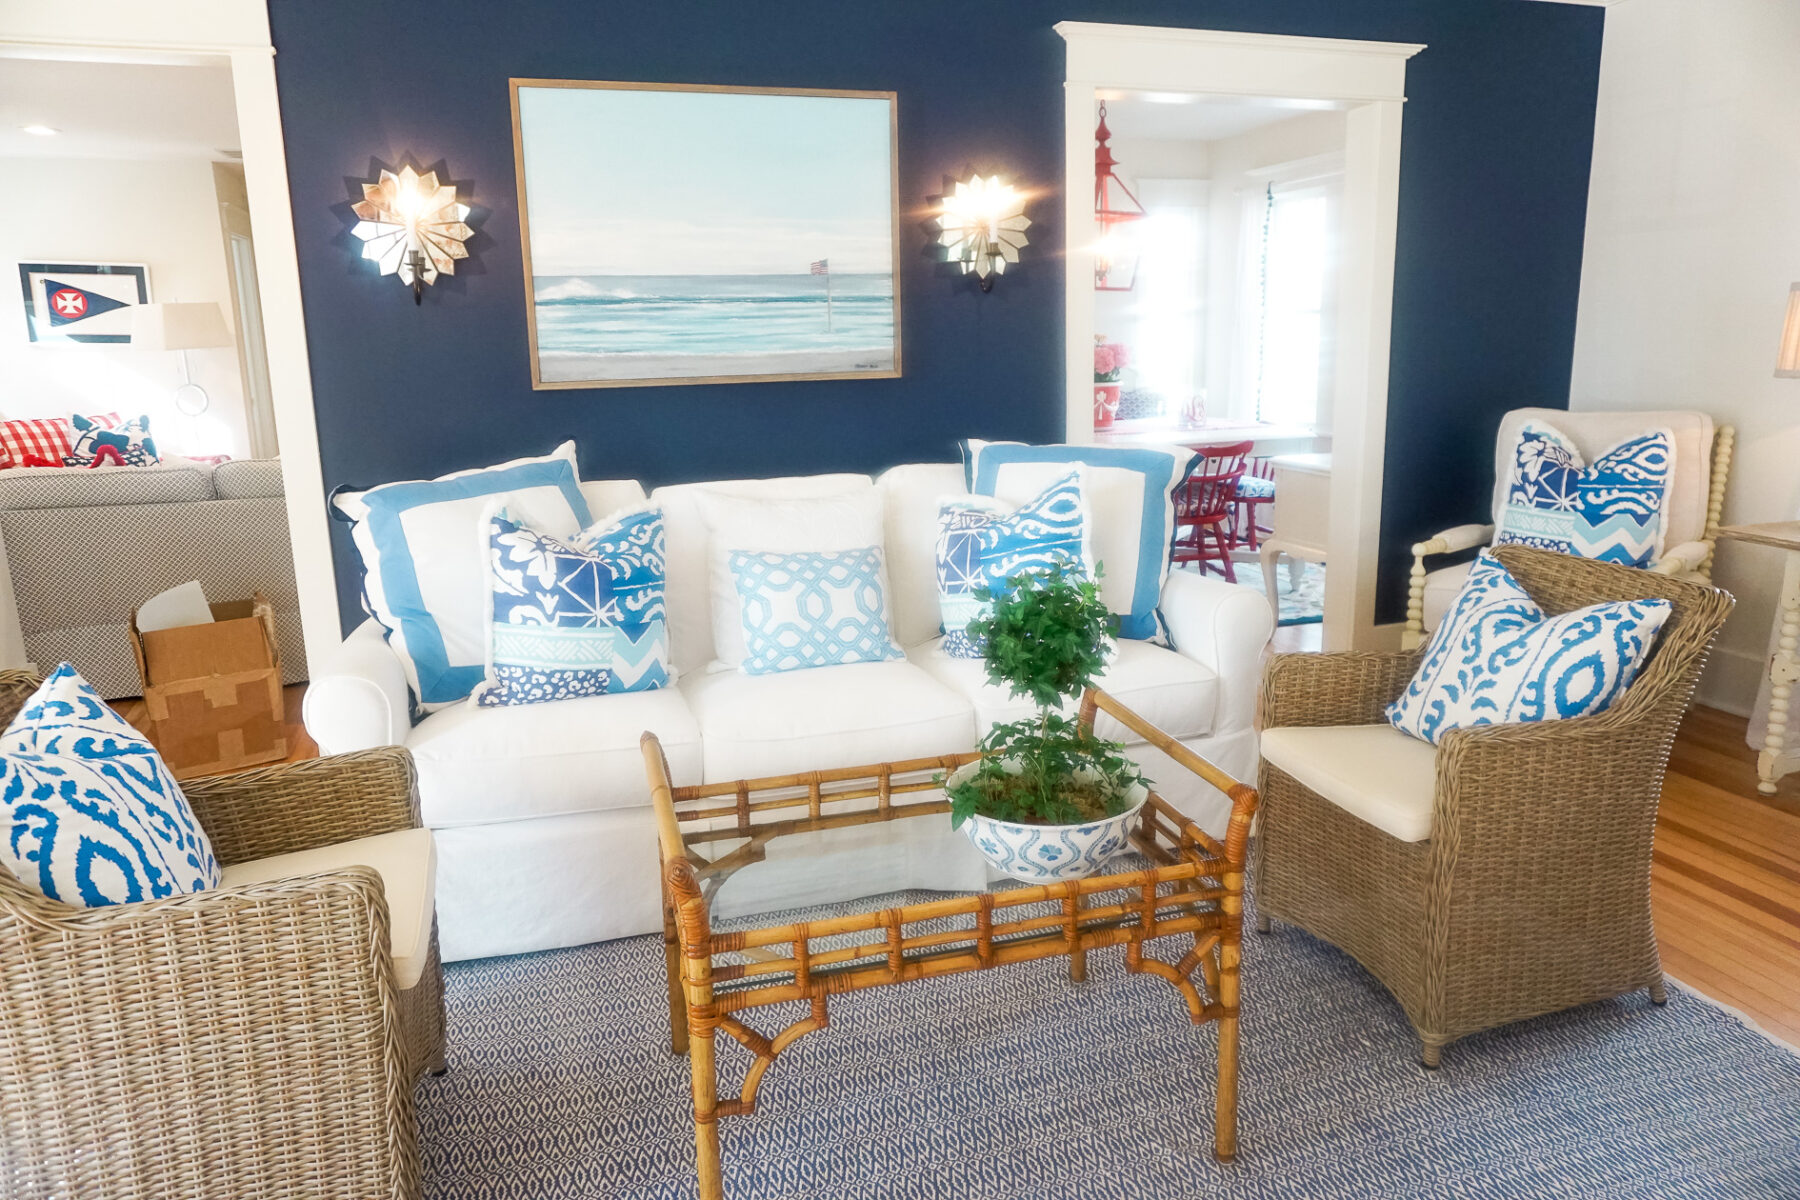 Beach House red white and blue decorations in living and ...